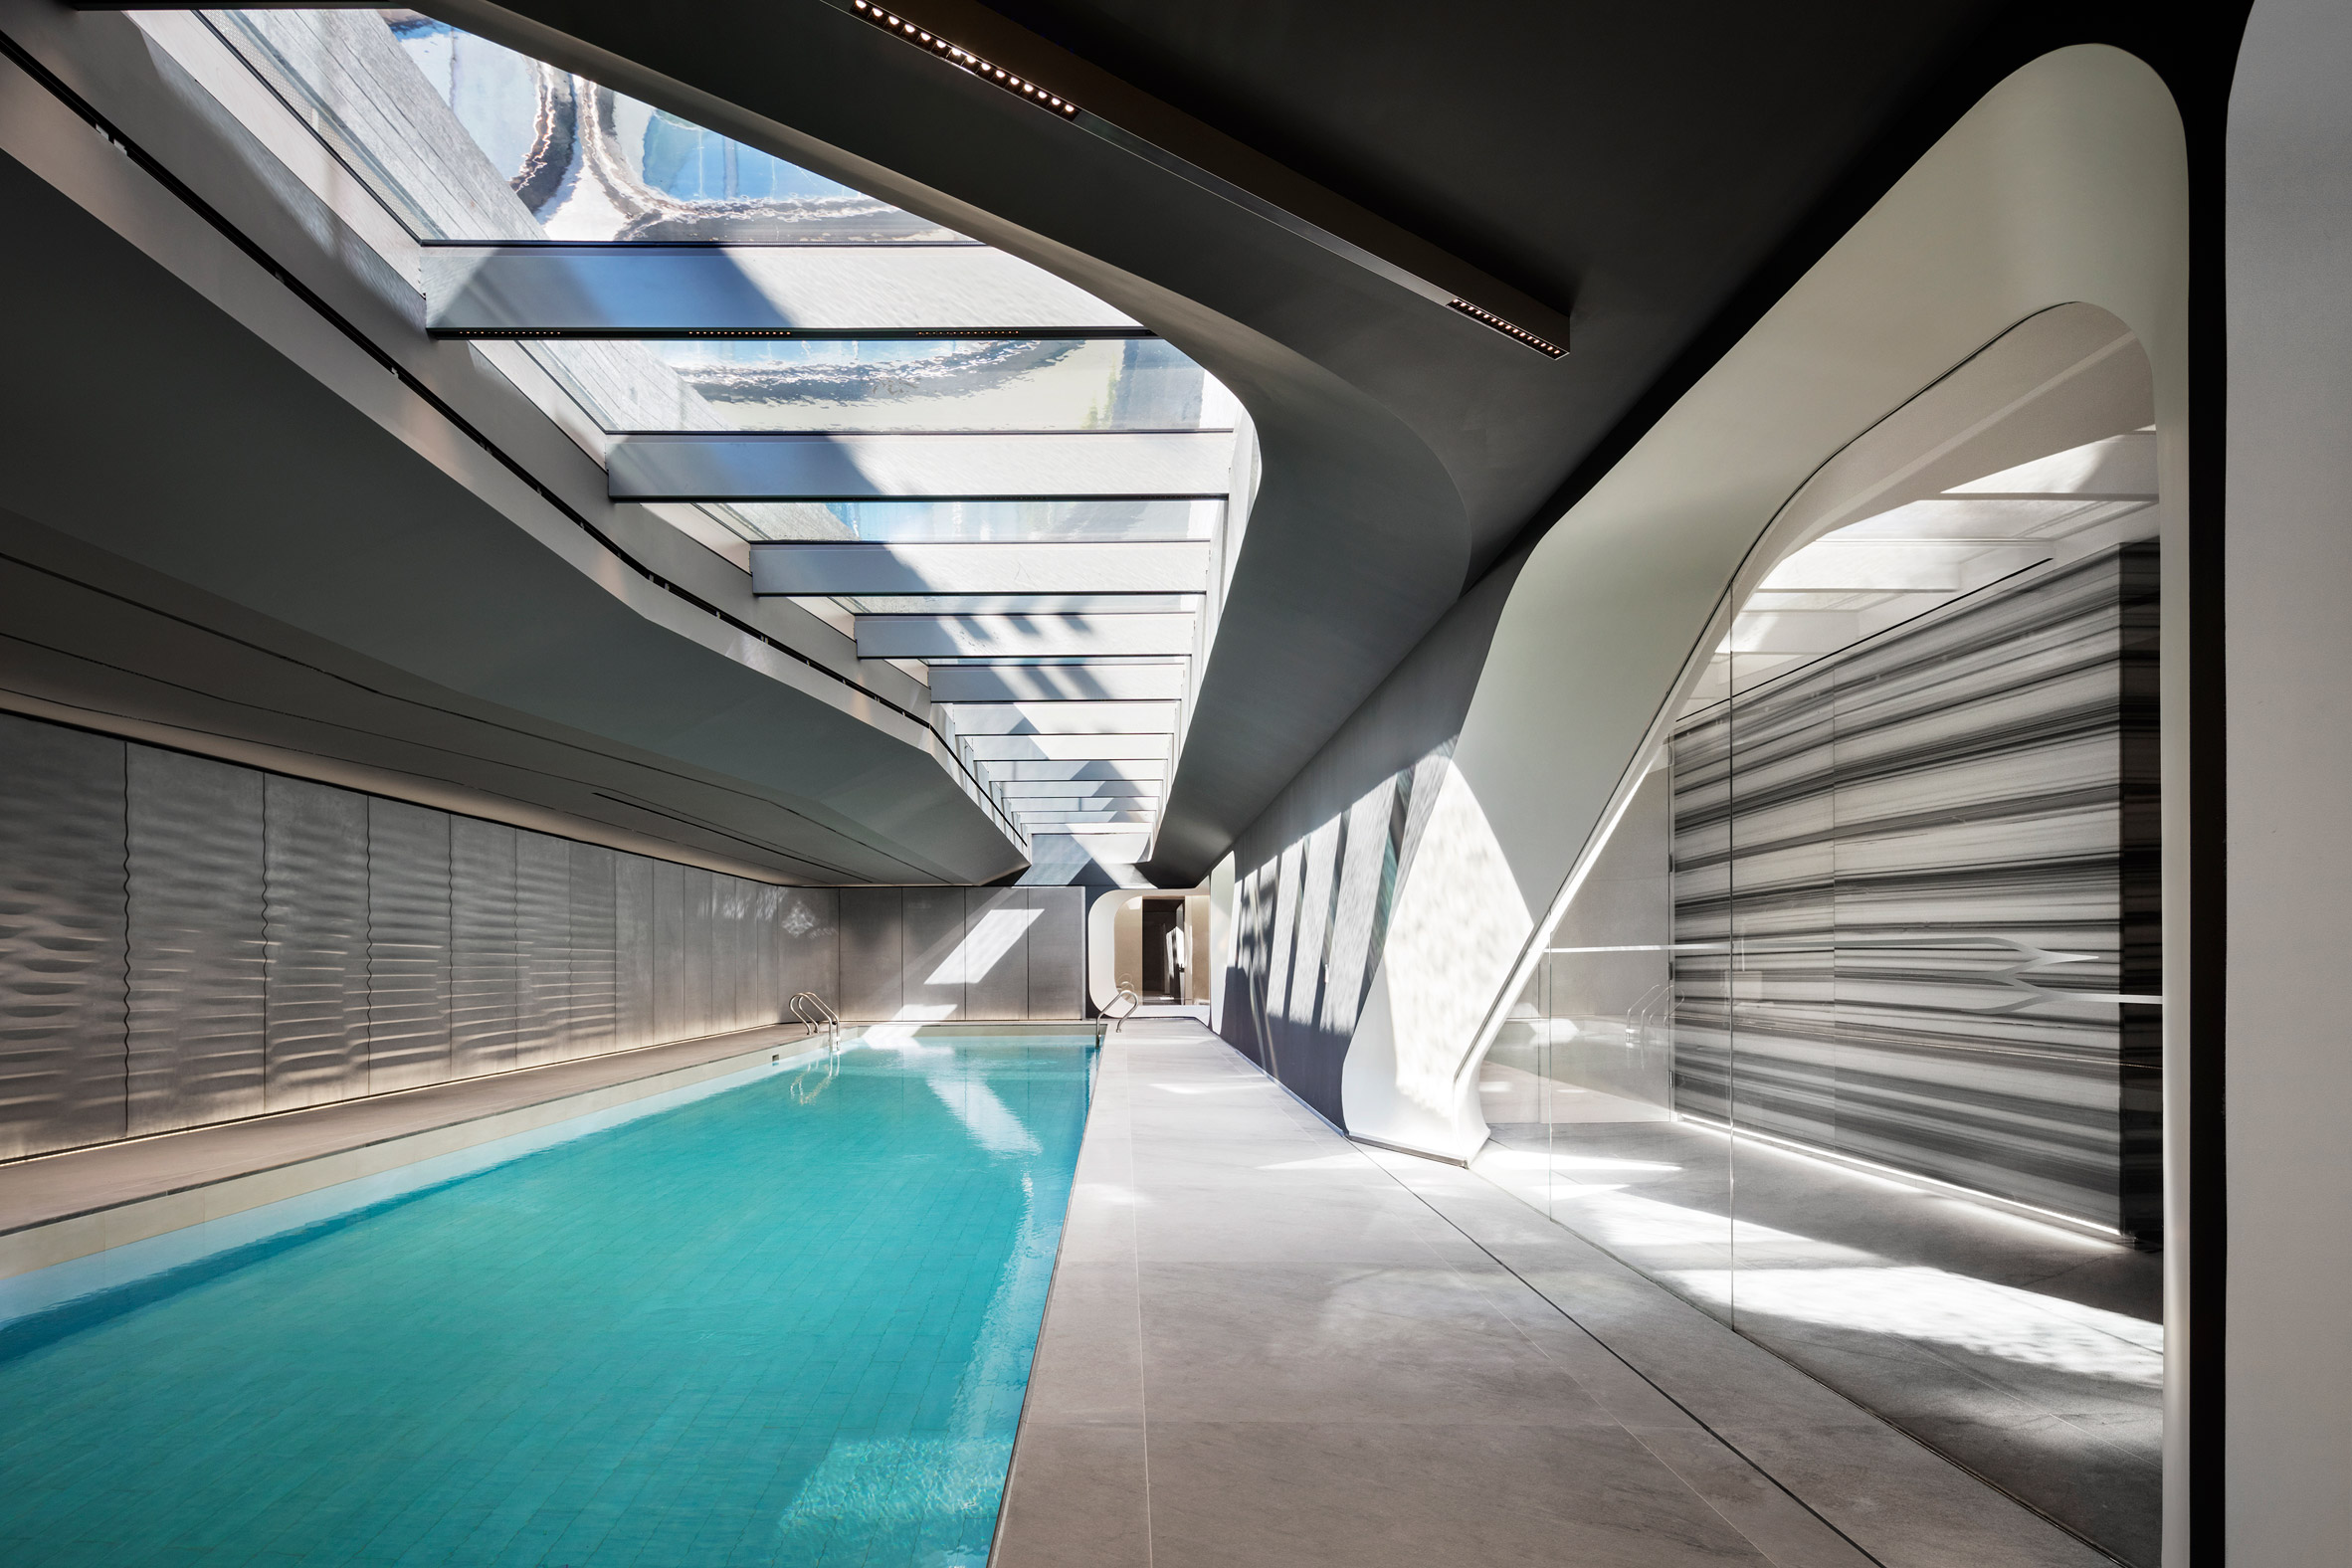 Zaha Hadid's amenity spaces for 520 West 28th shown in new photos